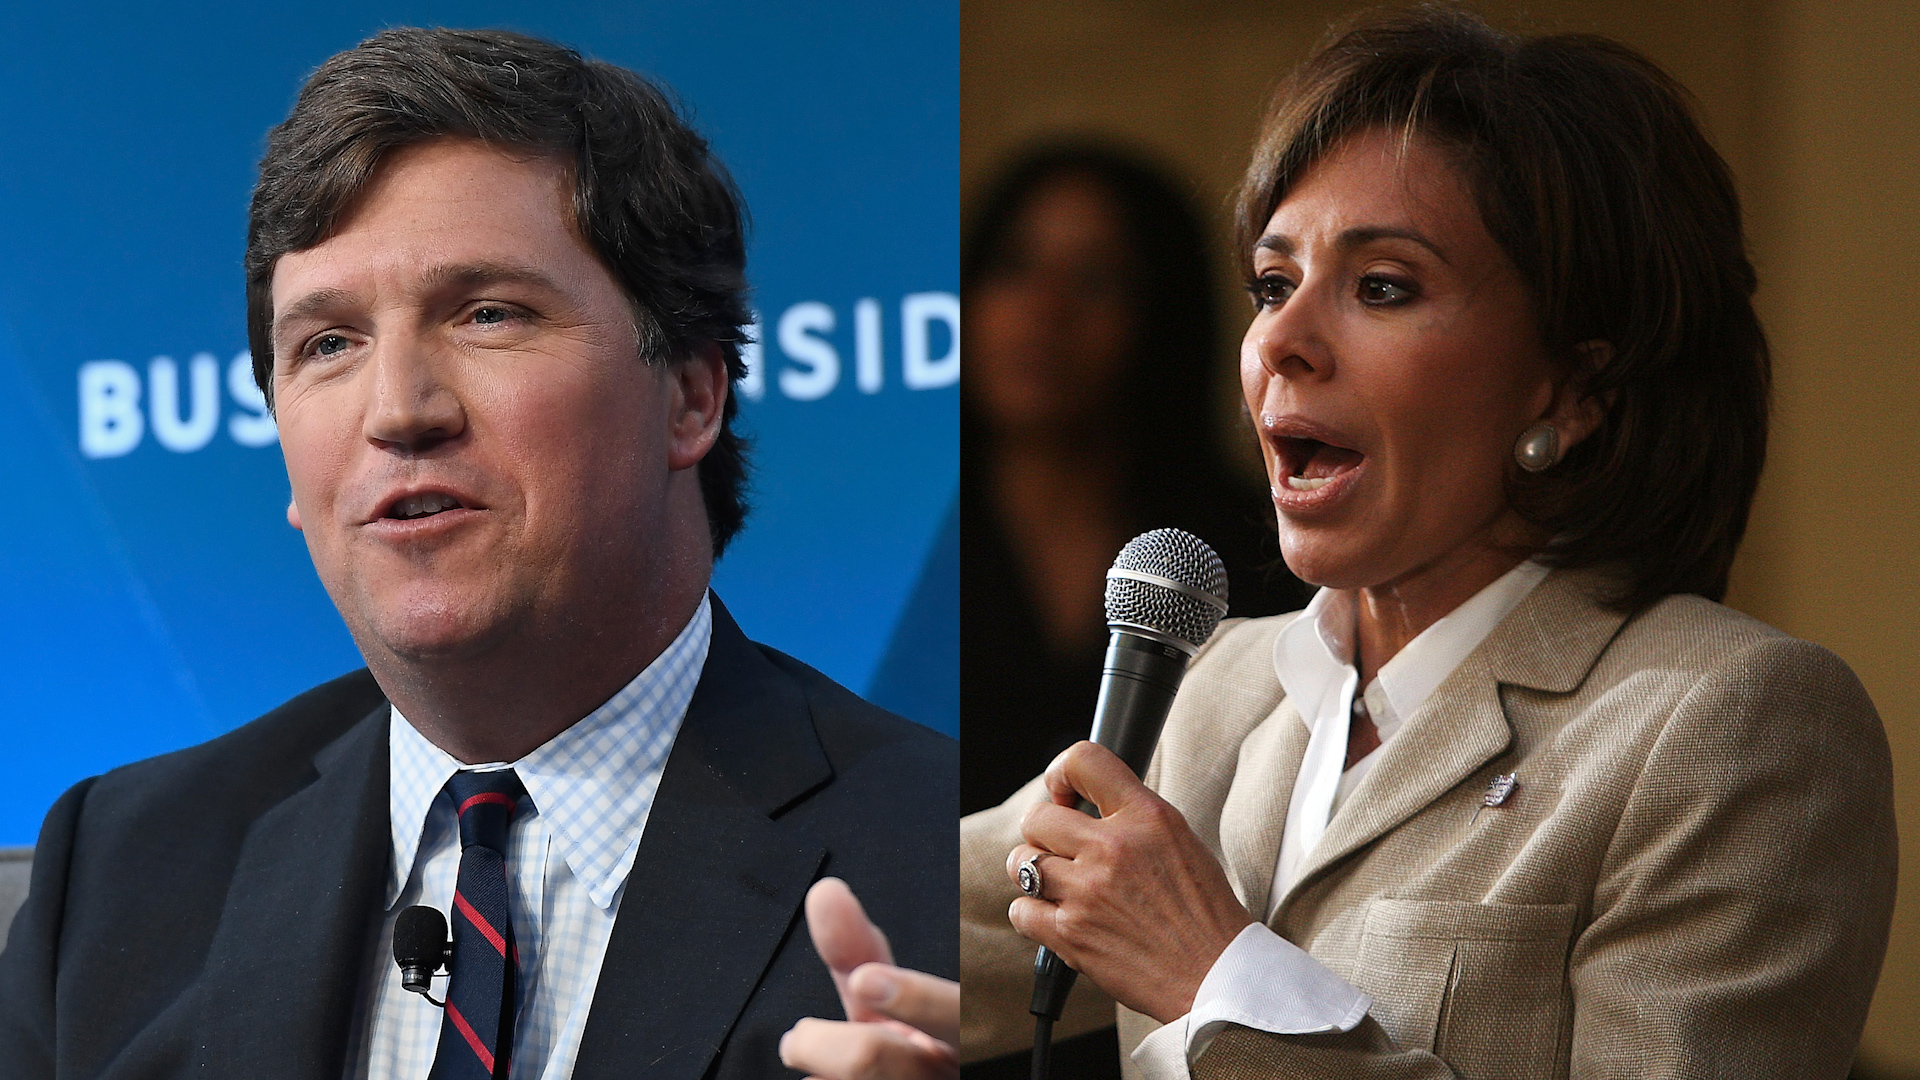 Why can't Fox apologize? It won't back down even amid Pirro, Carlson controversies